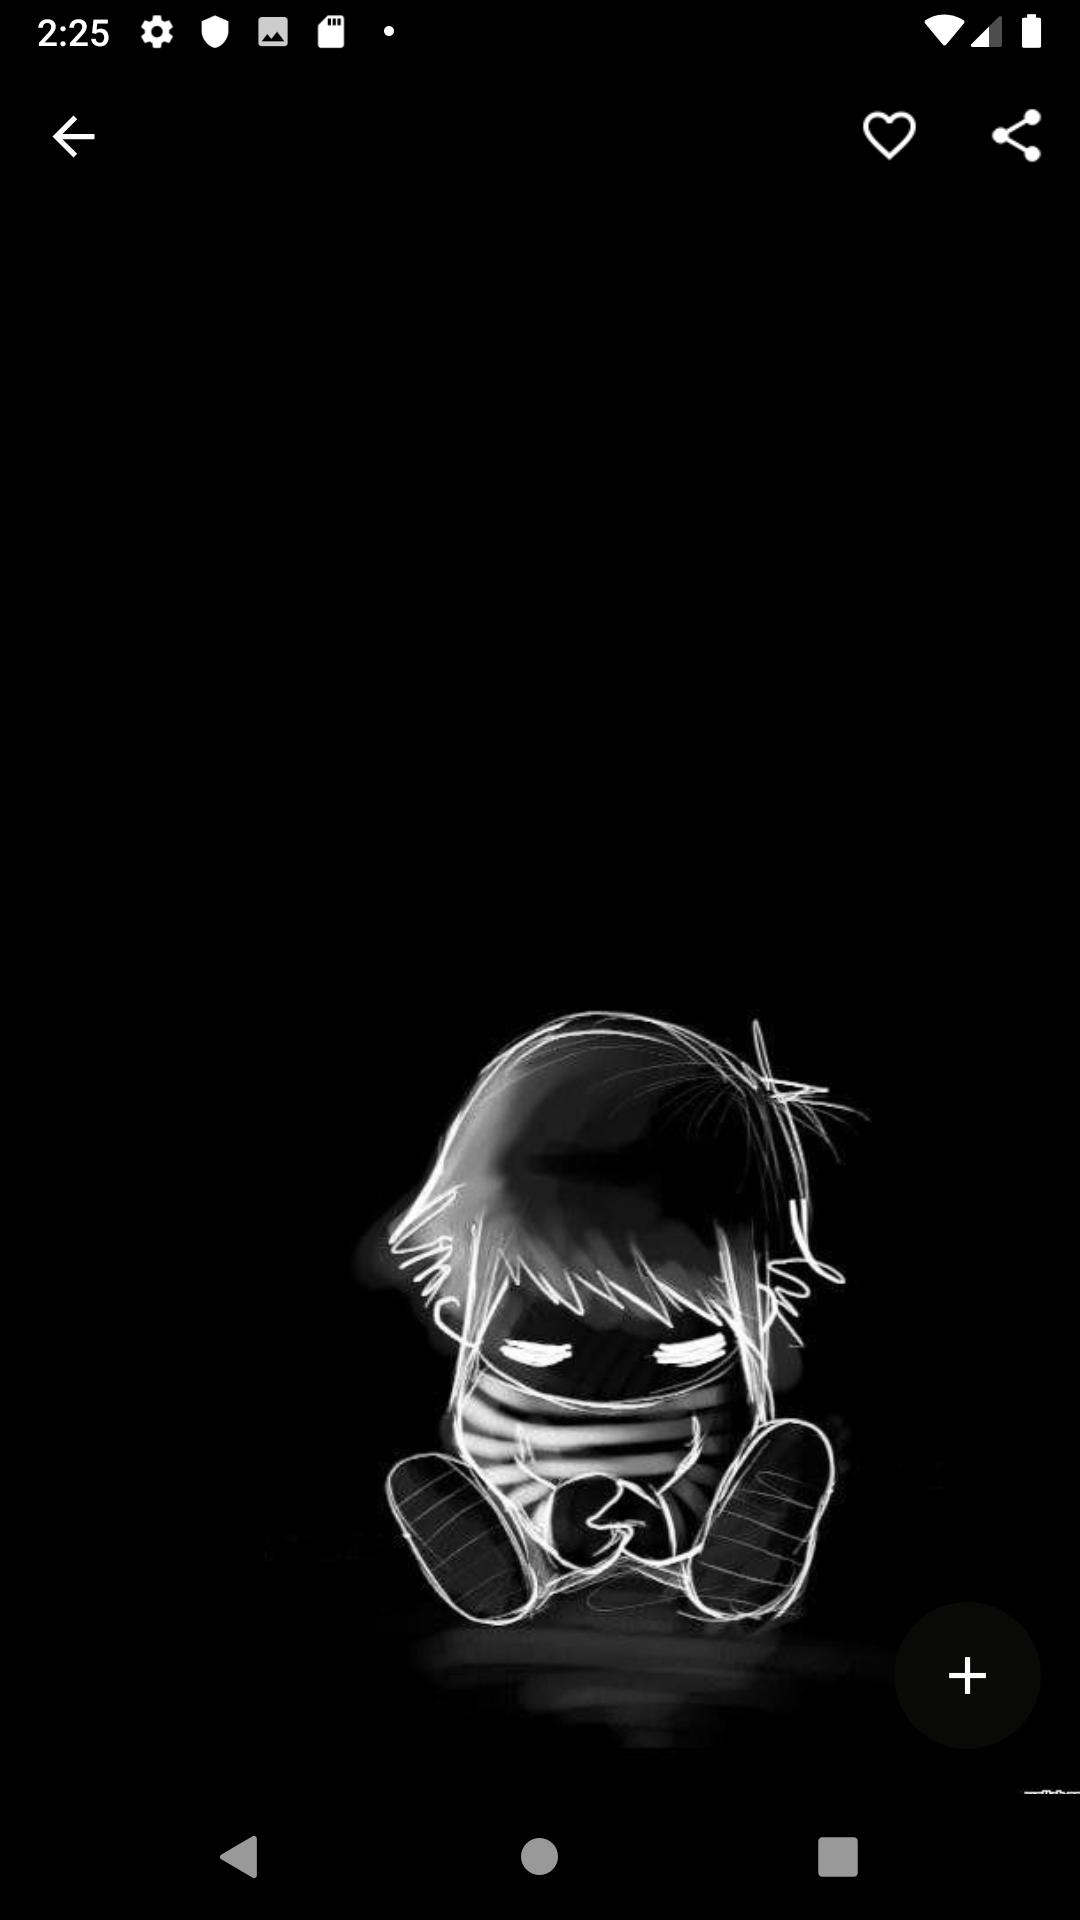 Depressing Wallpapers Hd For Android Apk Download